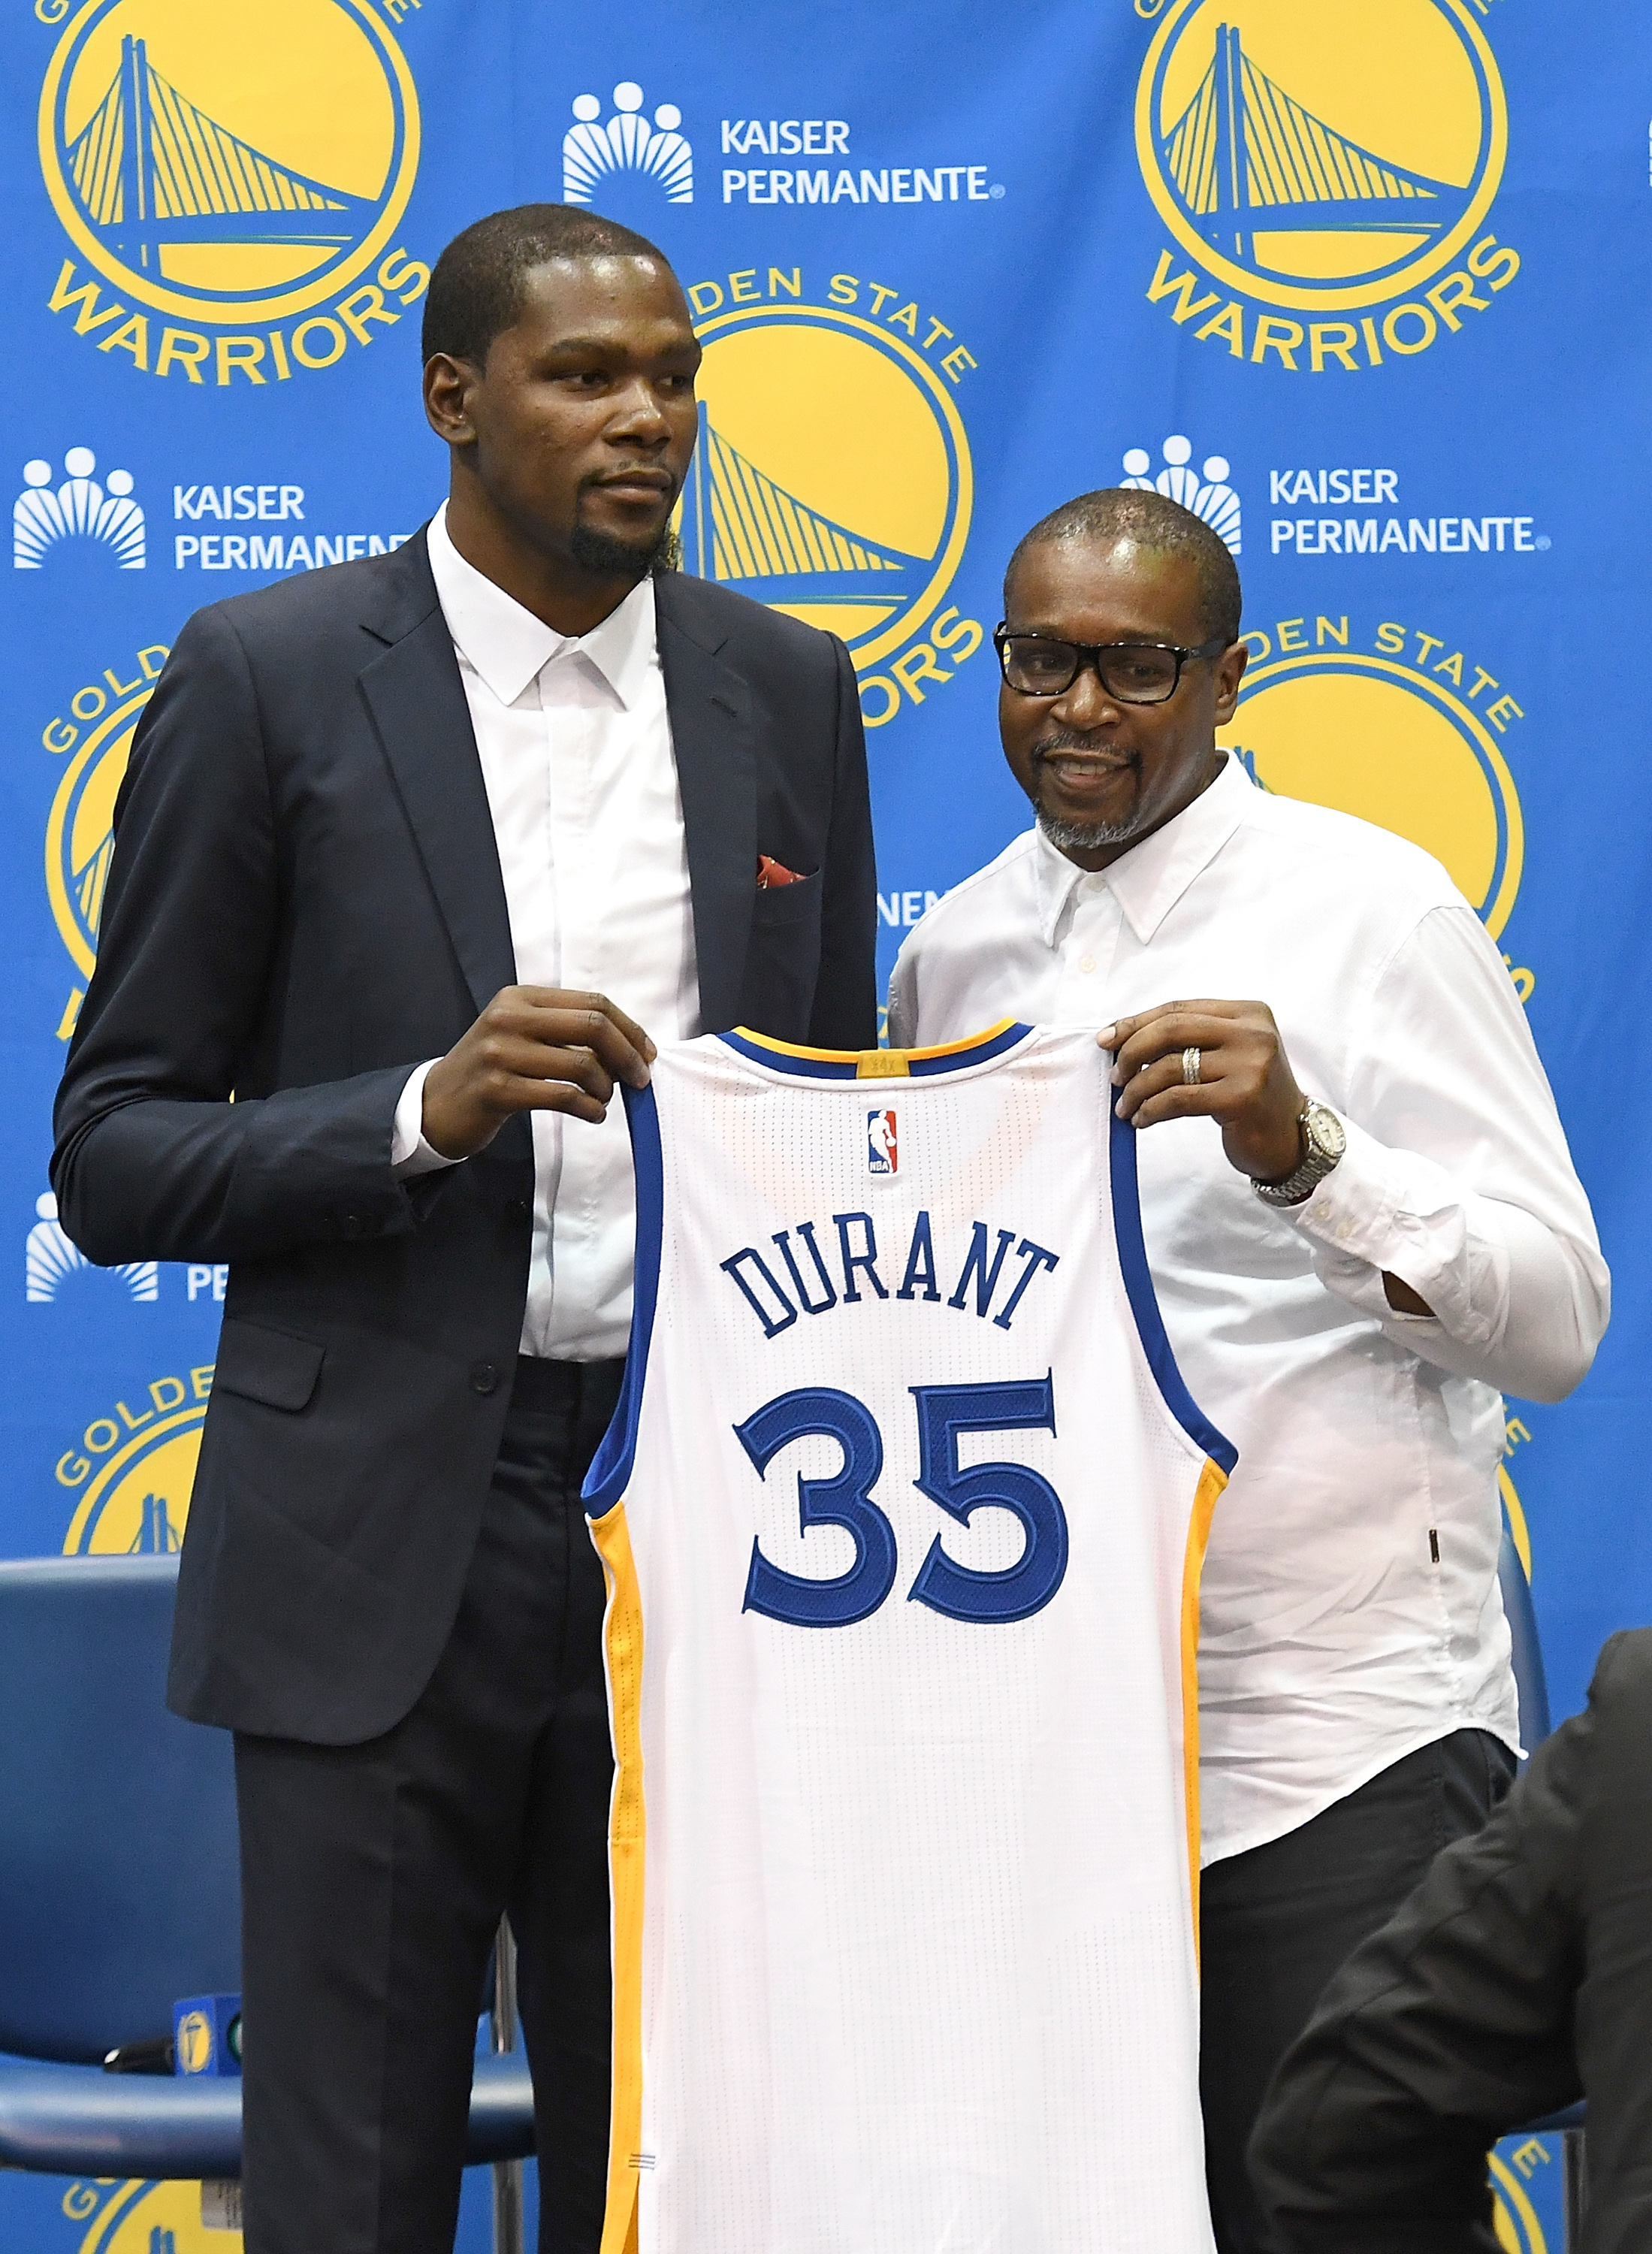 f6f0ae65afc OAKLAND, CA - JULY 07: Kevin Durant #35 of the Golden State Warriors